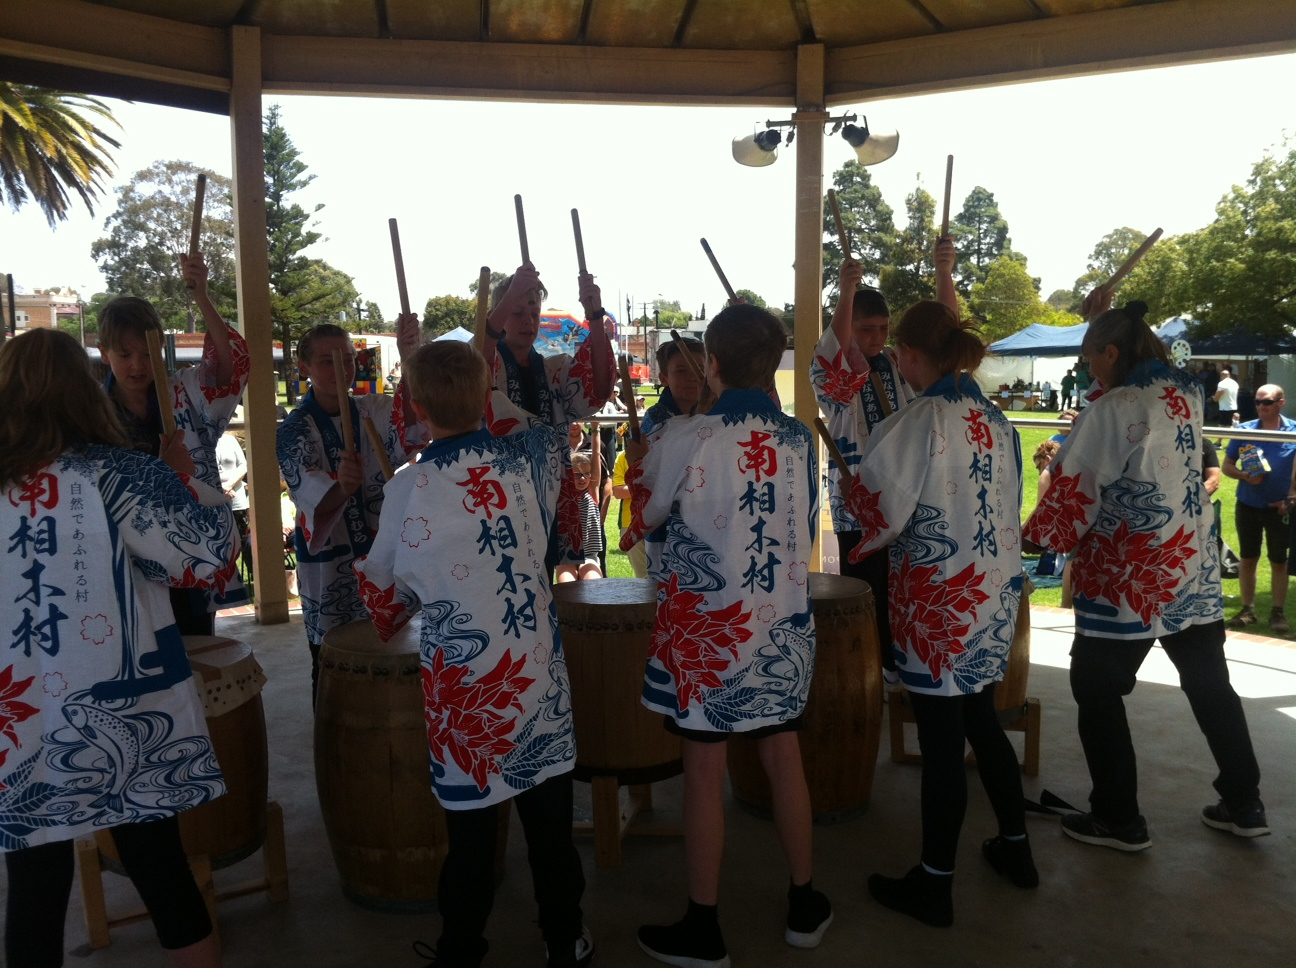 SCPS Taiko Drummers in Gawler